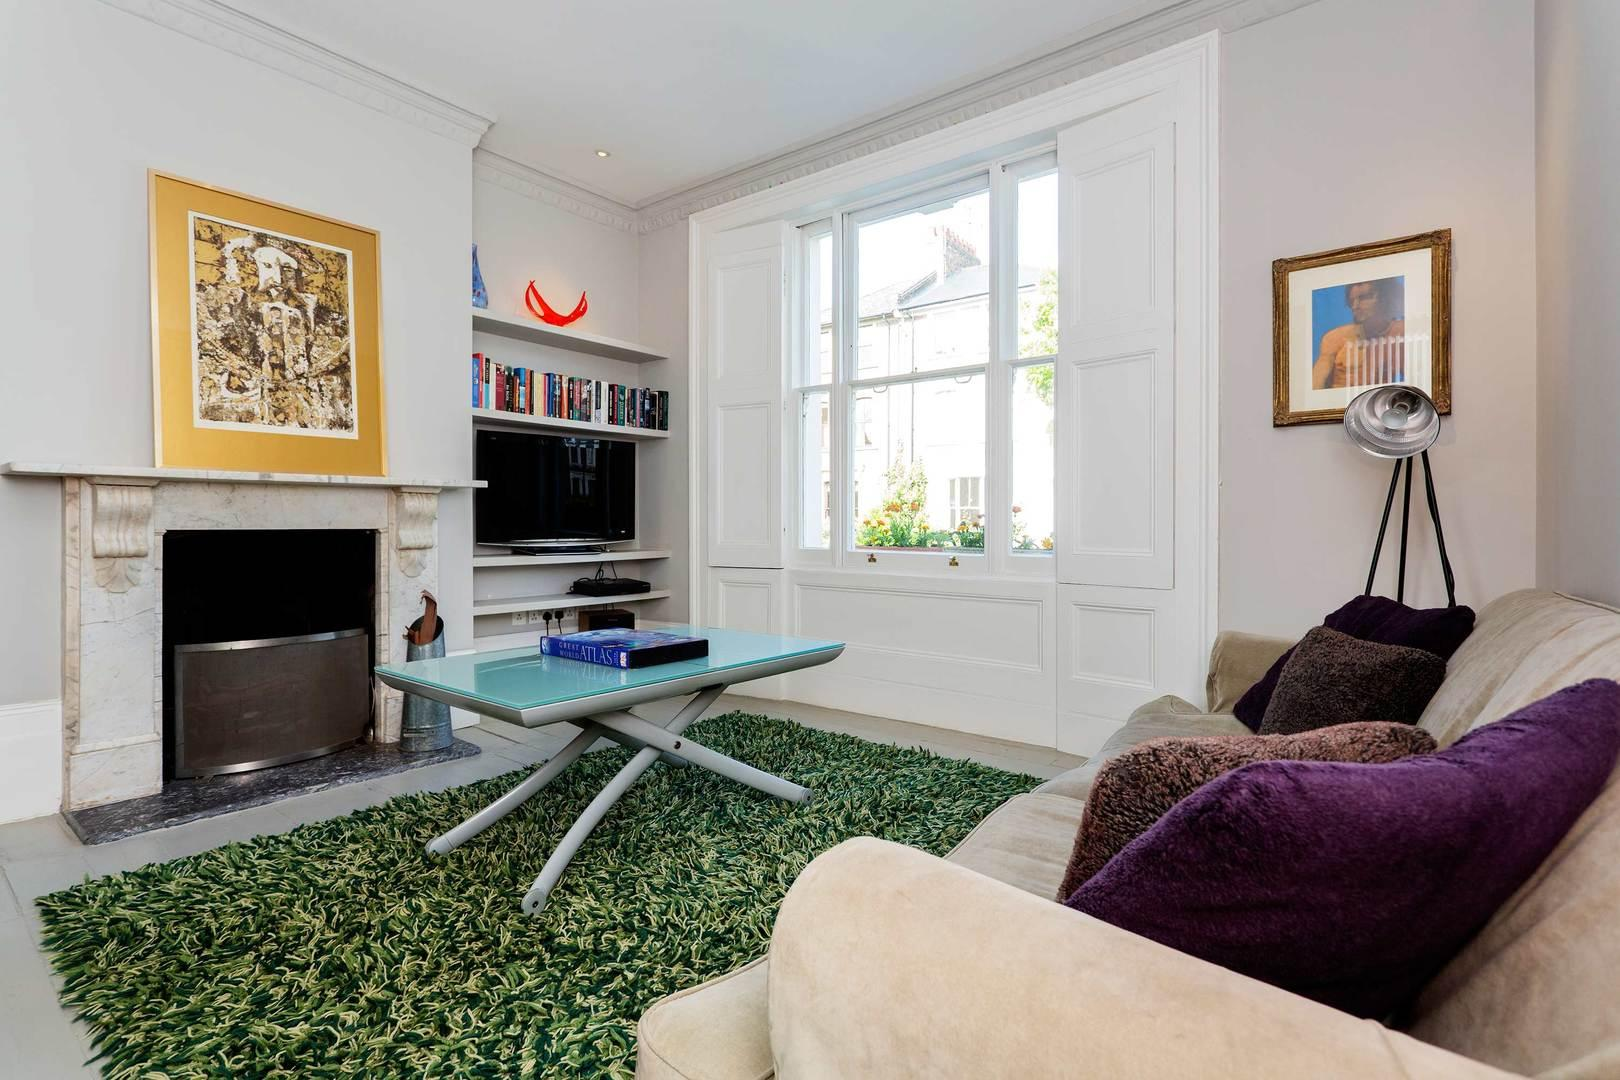 Property Image 2 - Chic Bright Camden House with Large Garden